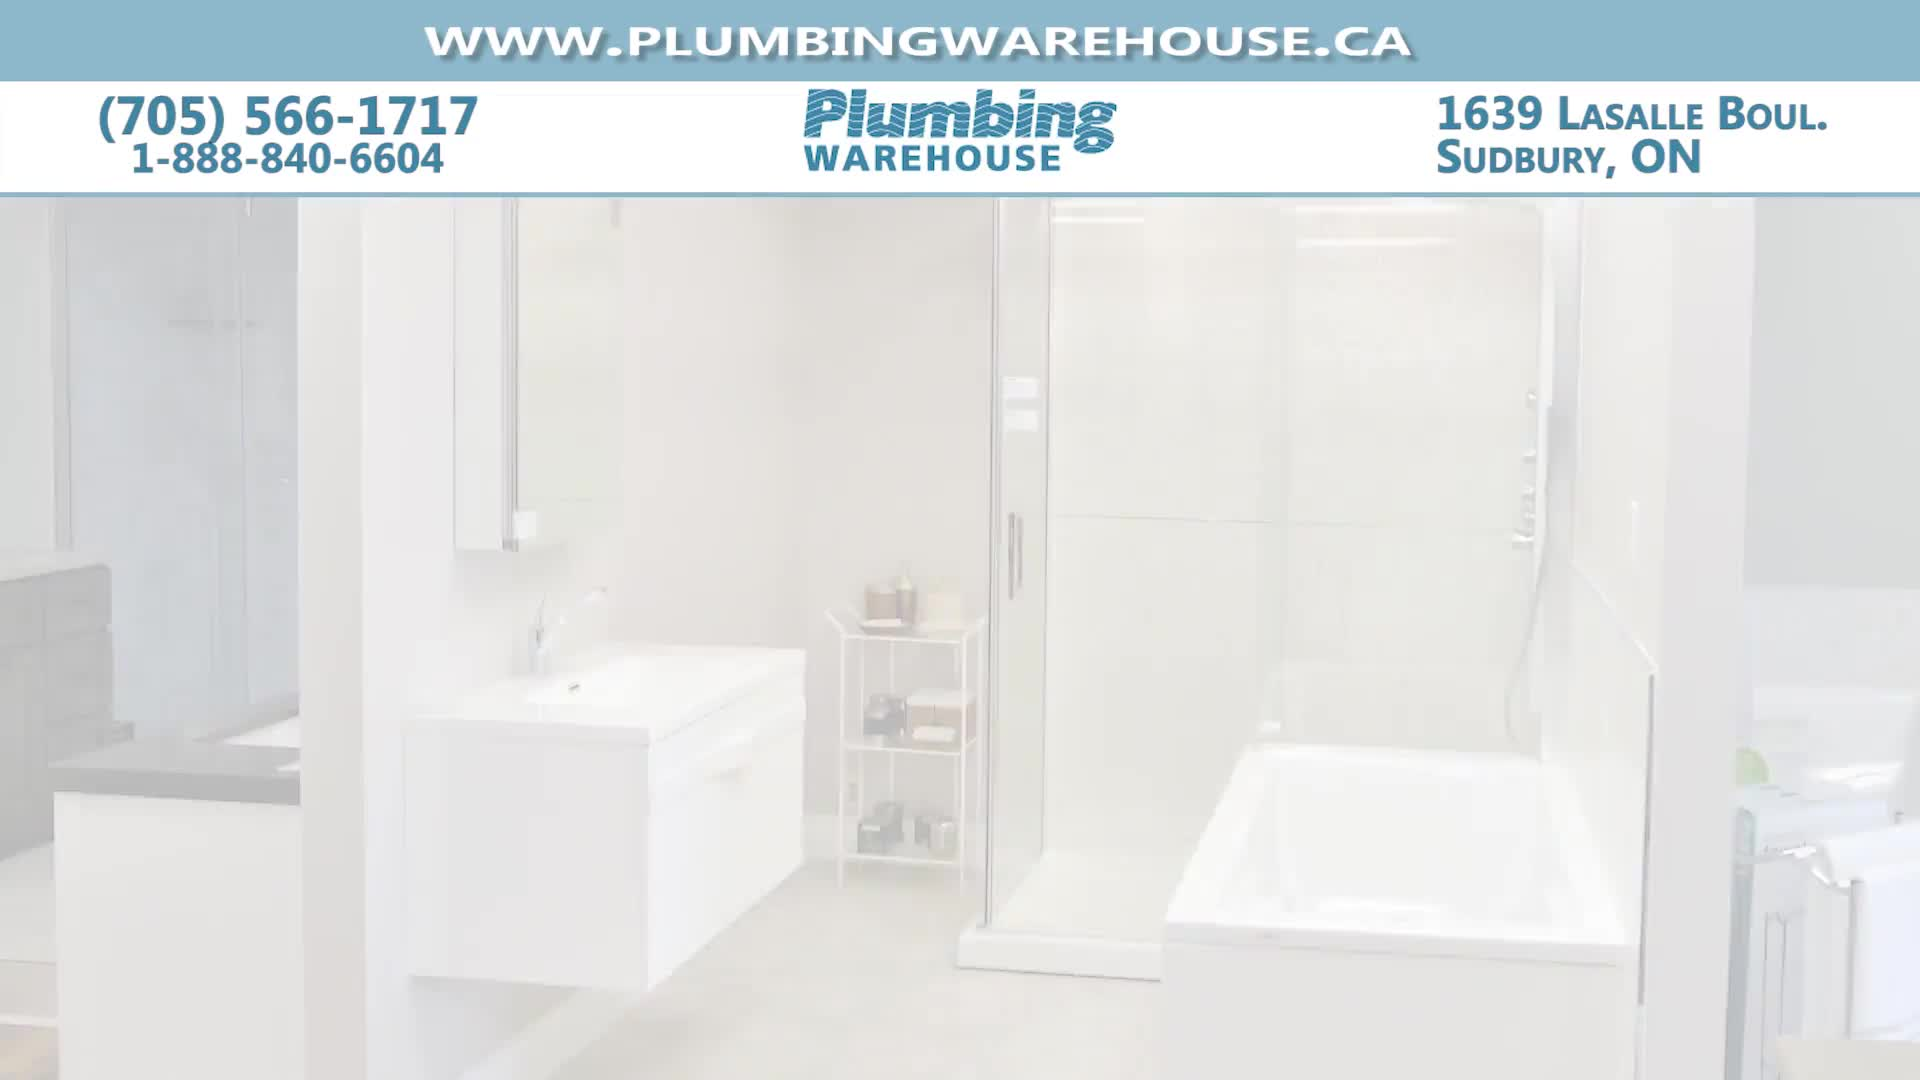 Bathroom Renovations Warehouse bathroom renovations in sudbury on | yellowpages.ca™